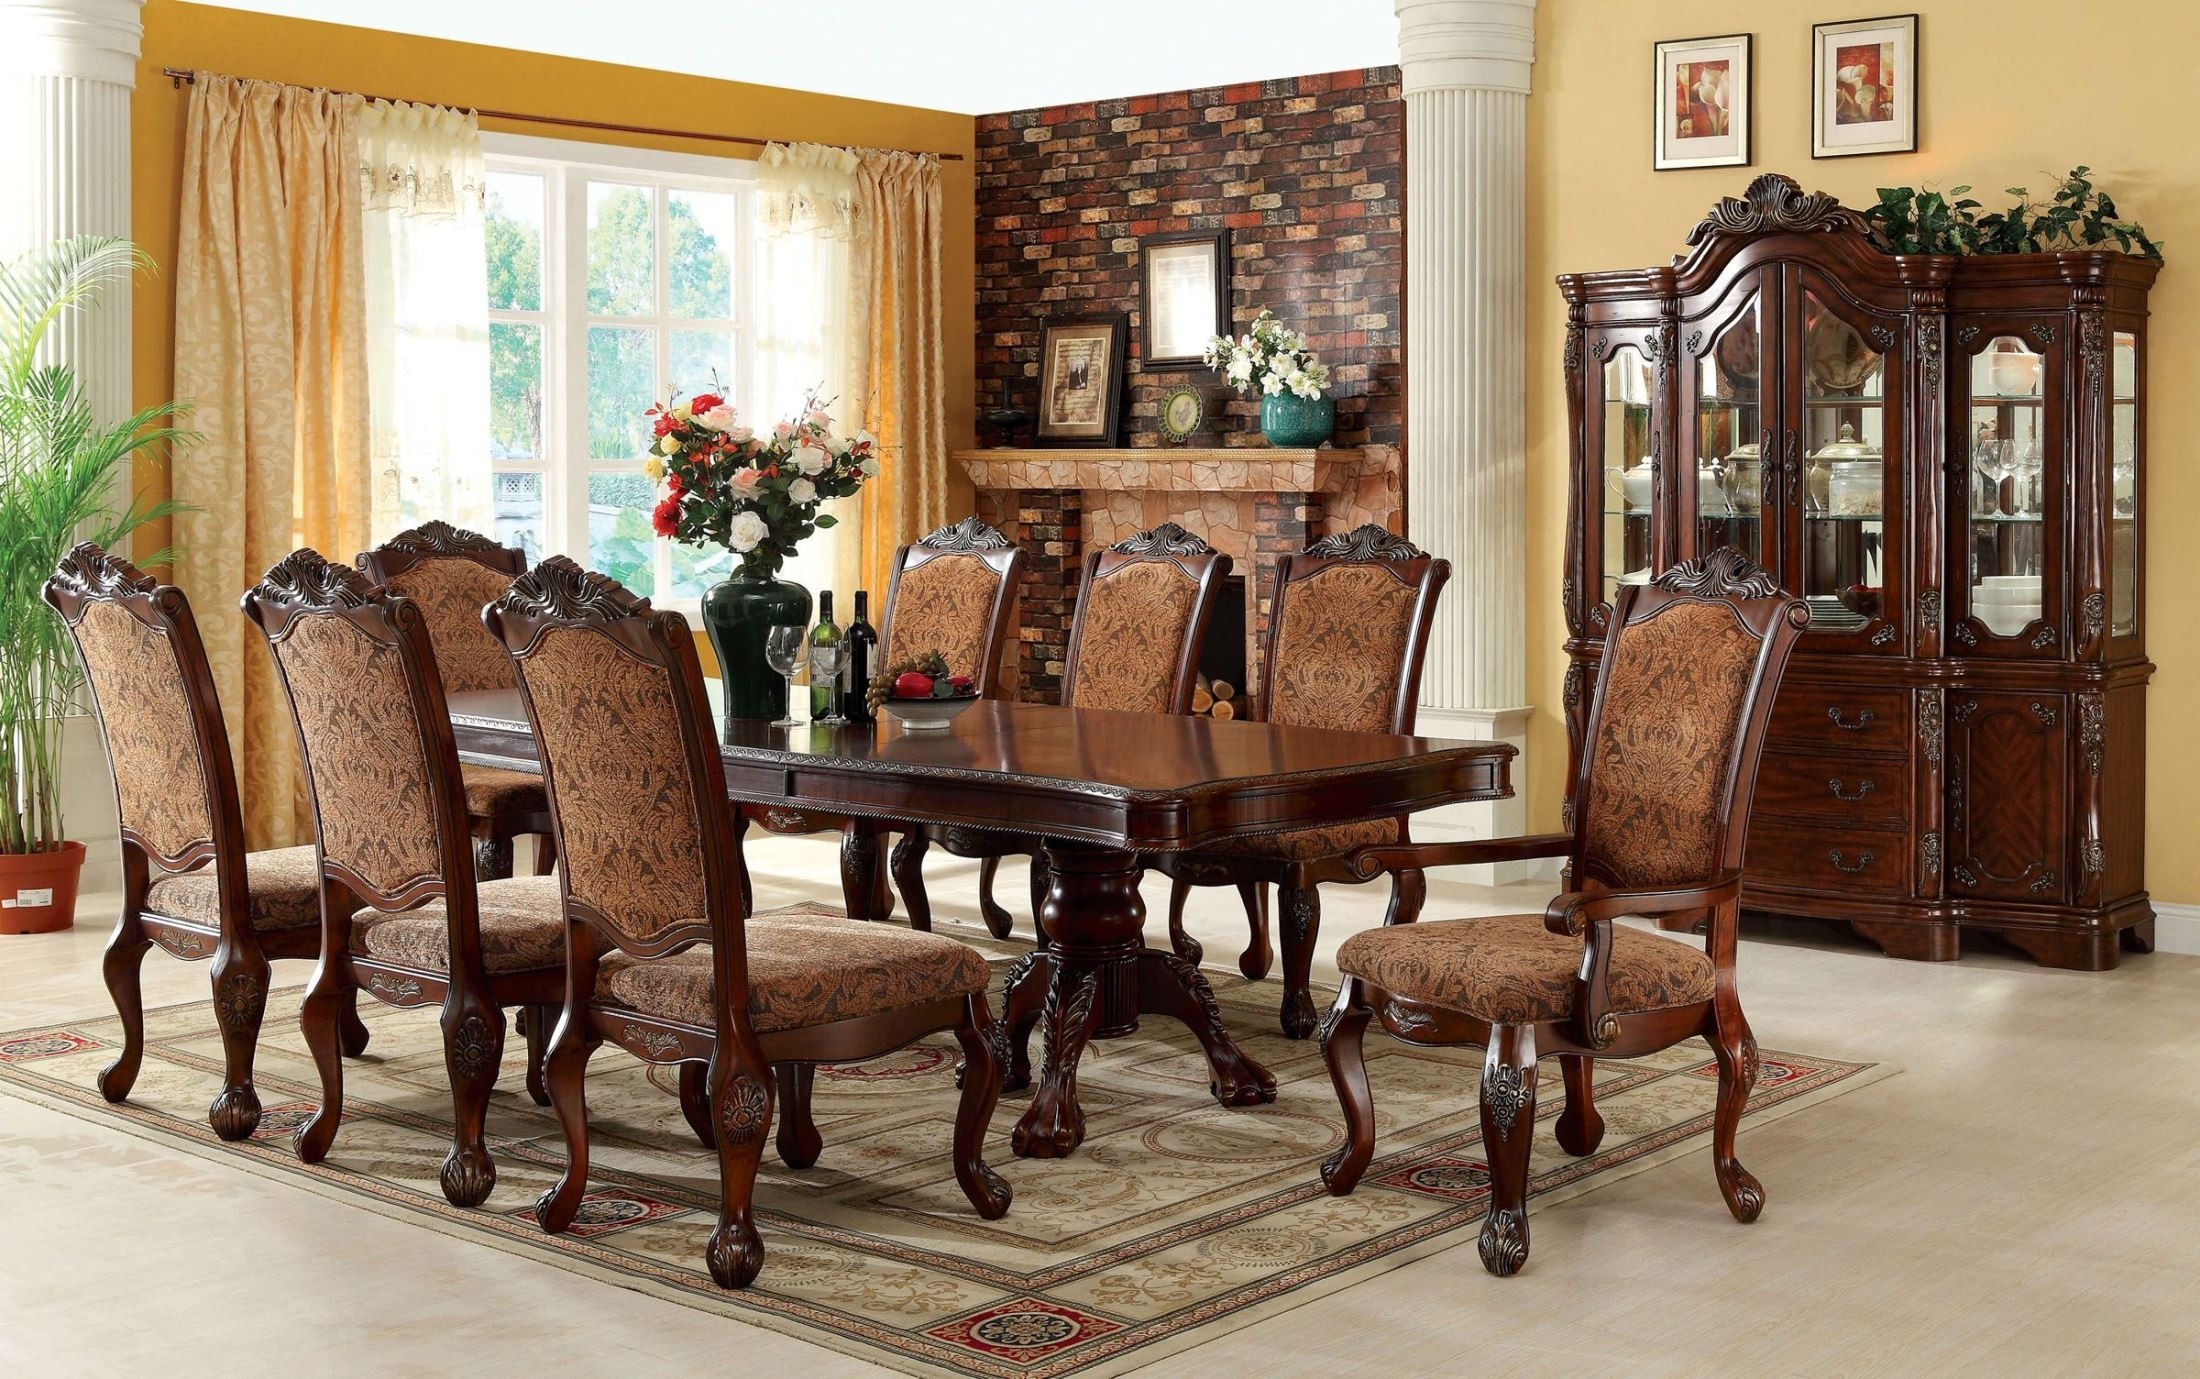 Cromwell antique cherry formal dining room set cm3103t for Formal dining room furniture sets